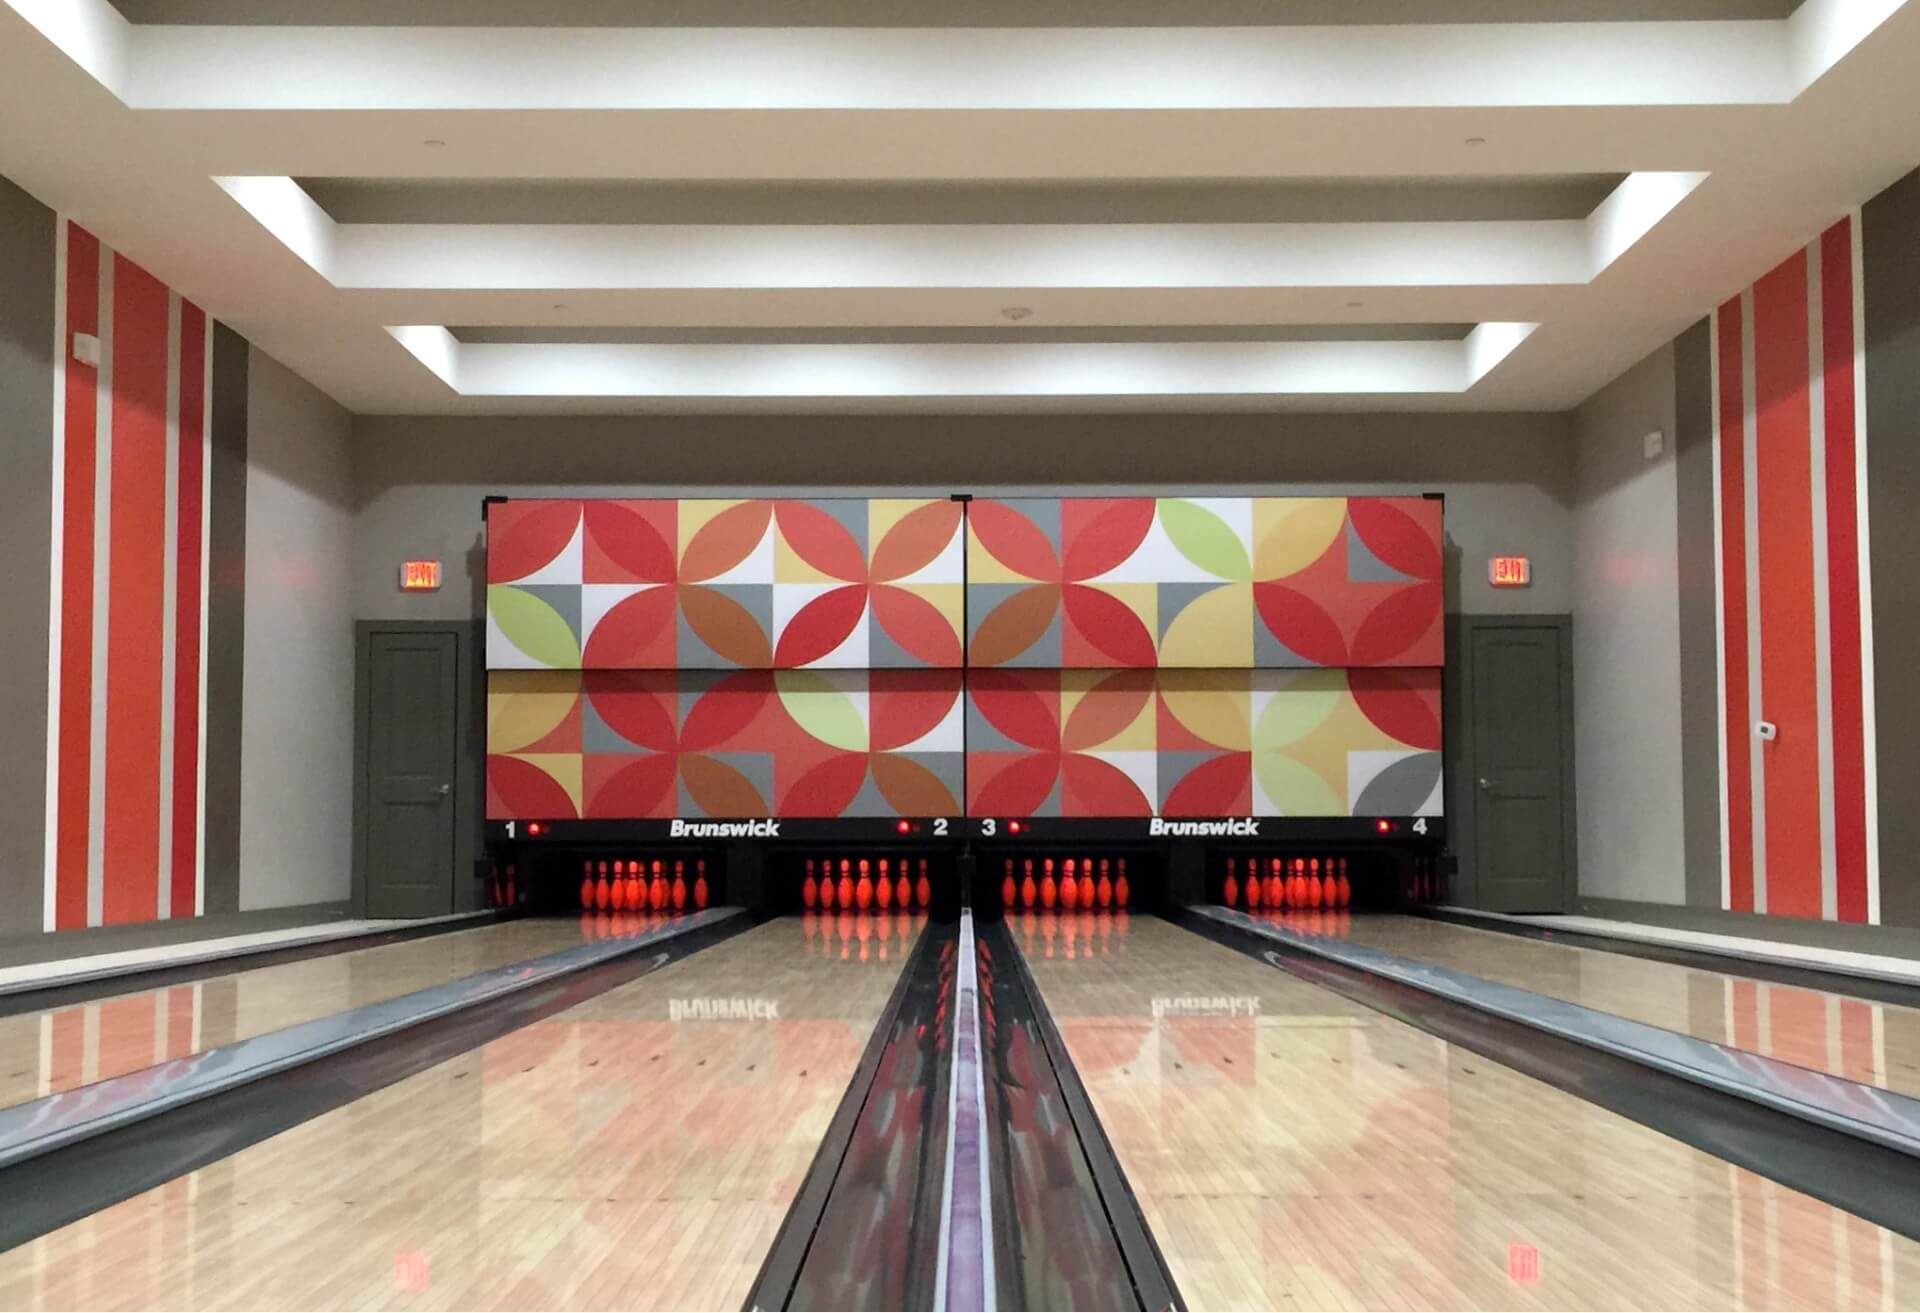 Home Bowling Alley s & Amenity Bowling Lane Gallery